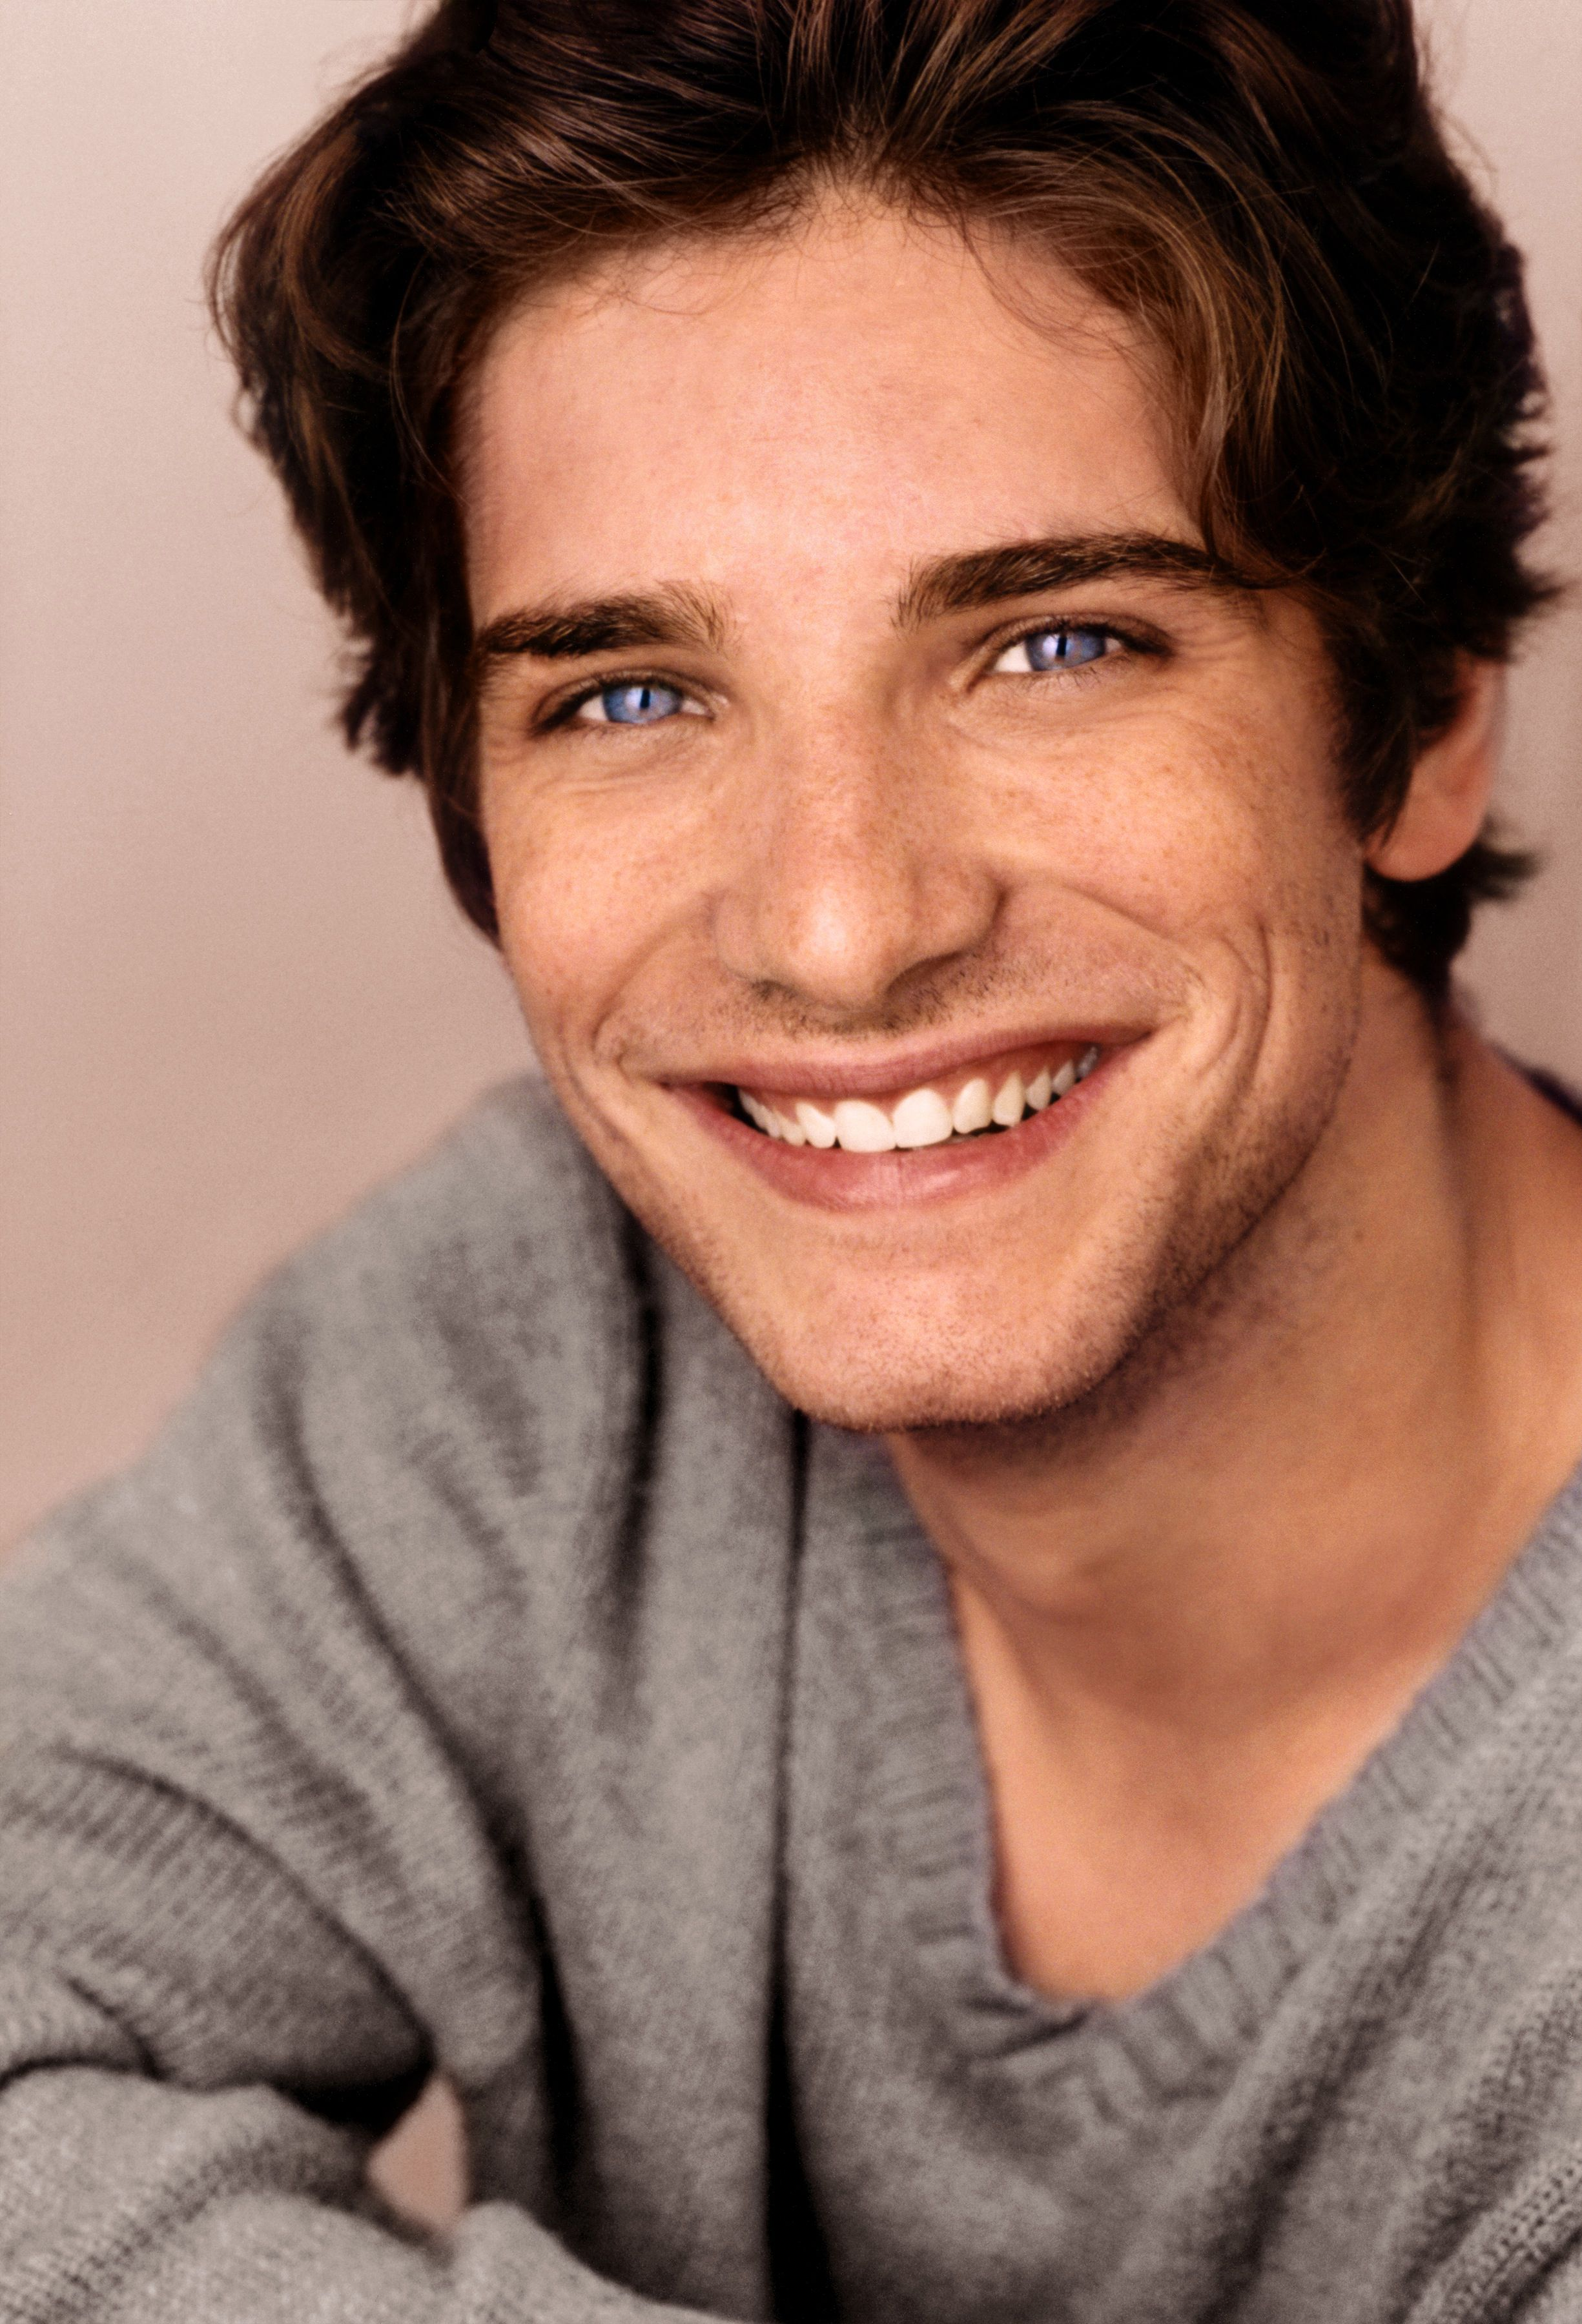 Susan Shacter Latest News Dark Hair Blue Eyes Character Inspiration Male Brown Hair And Grey Eyes